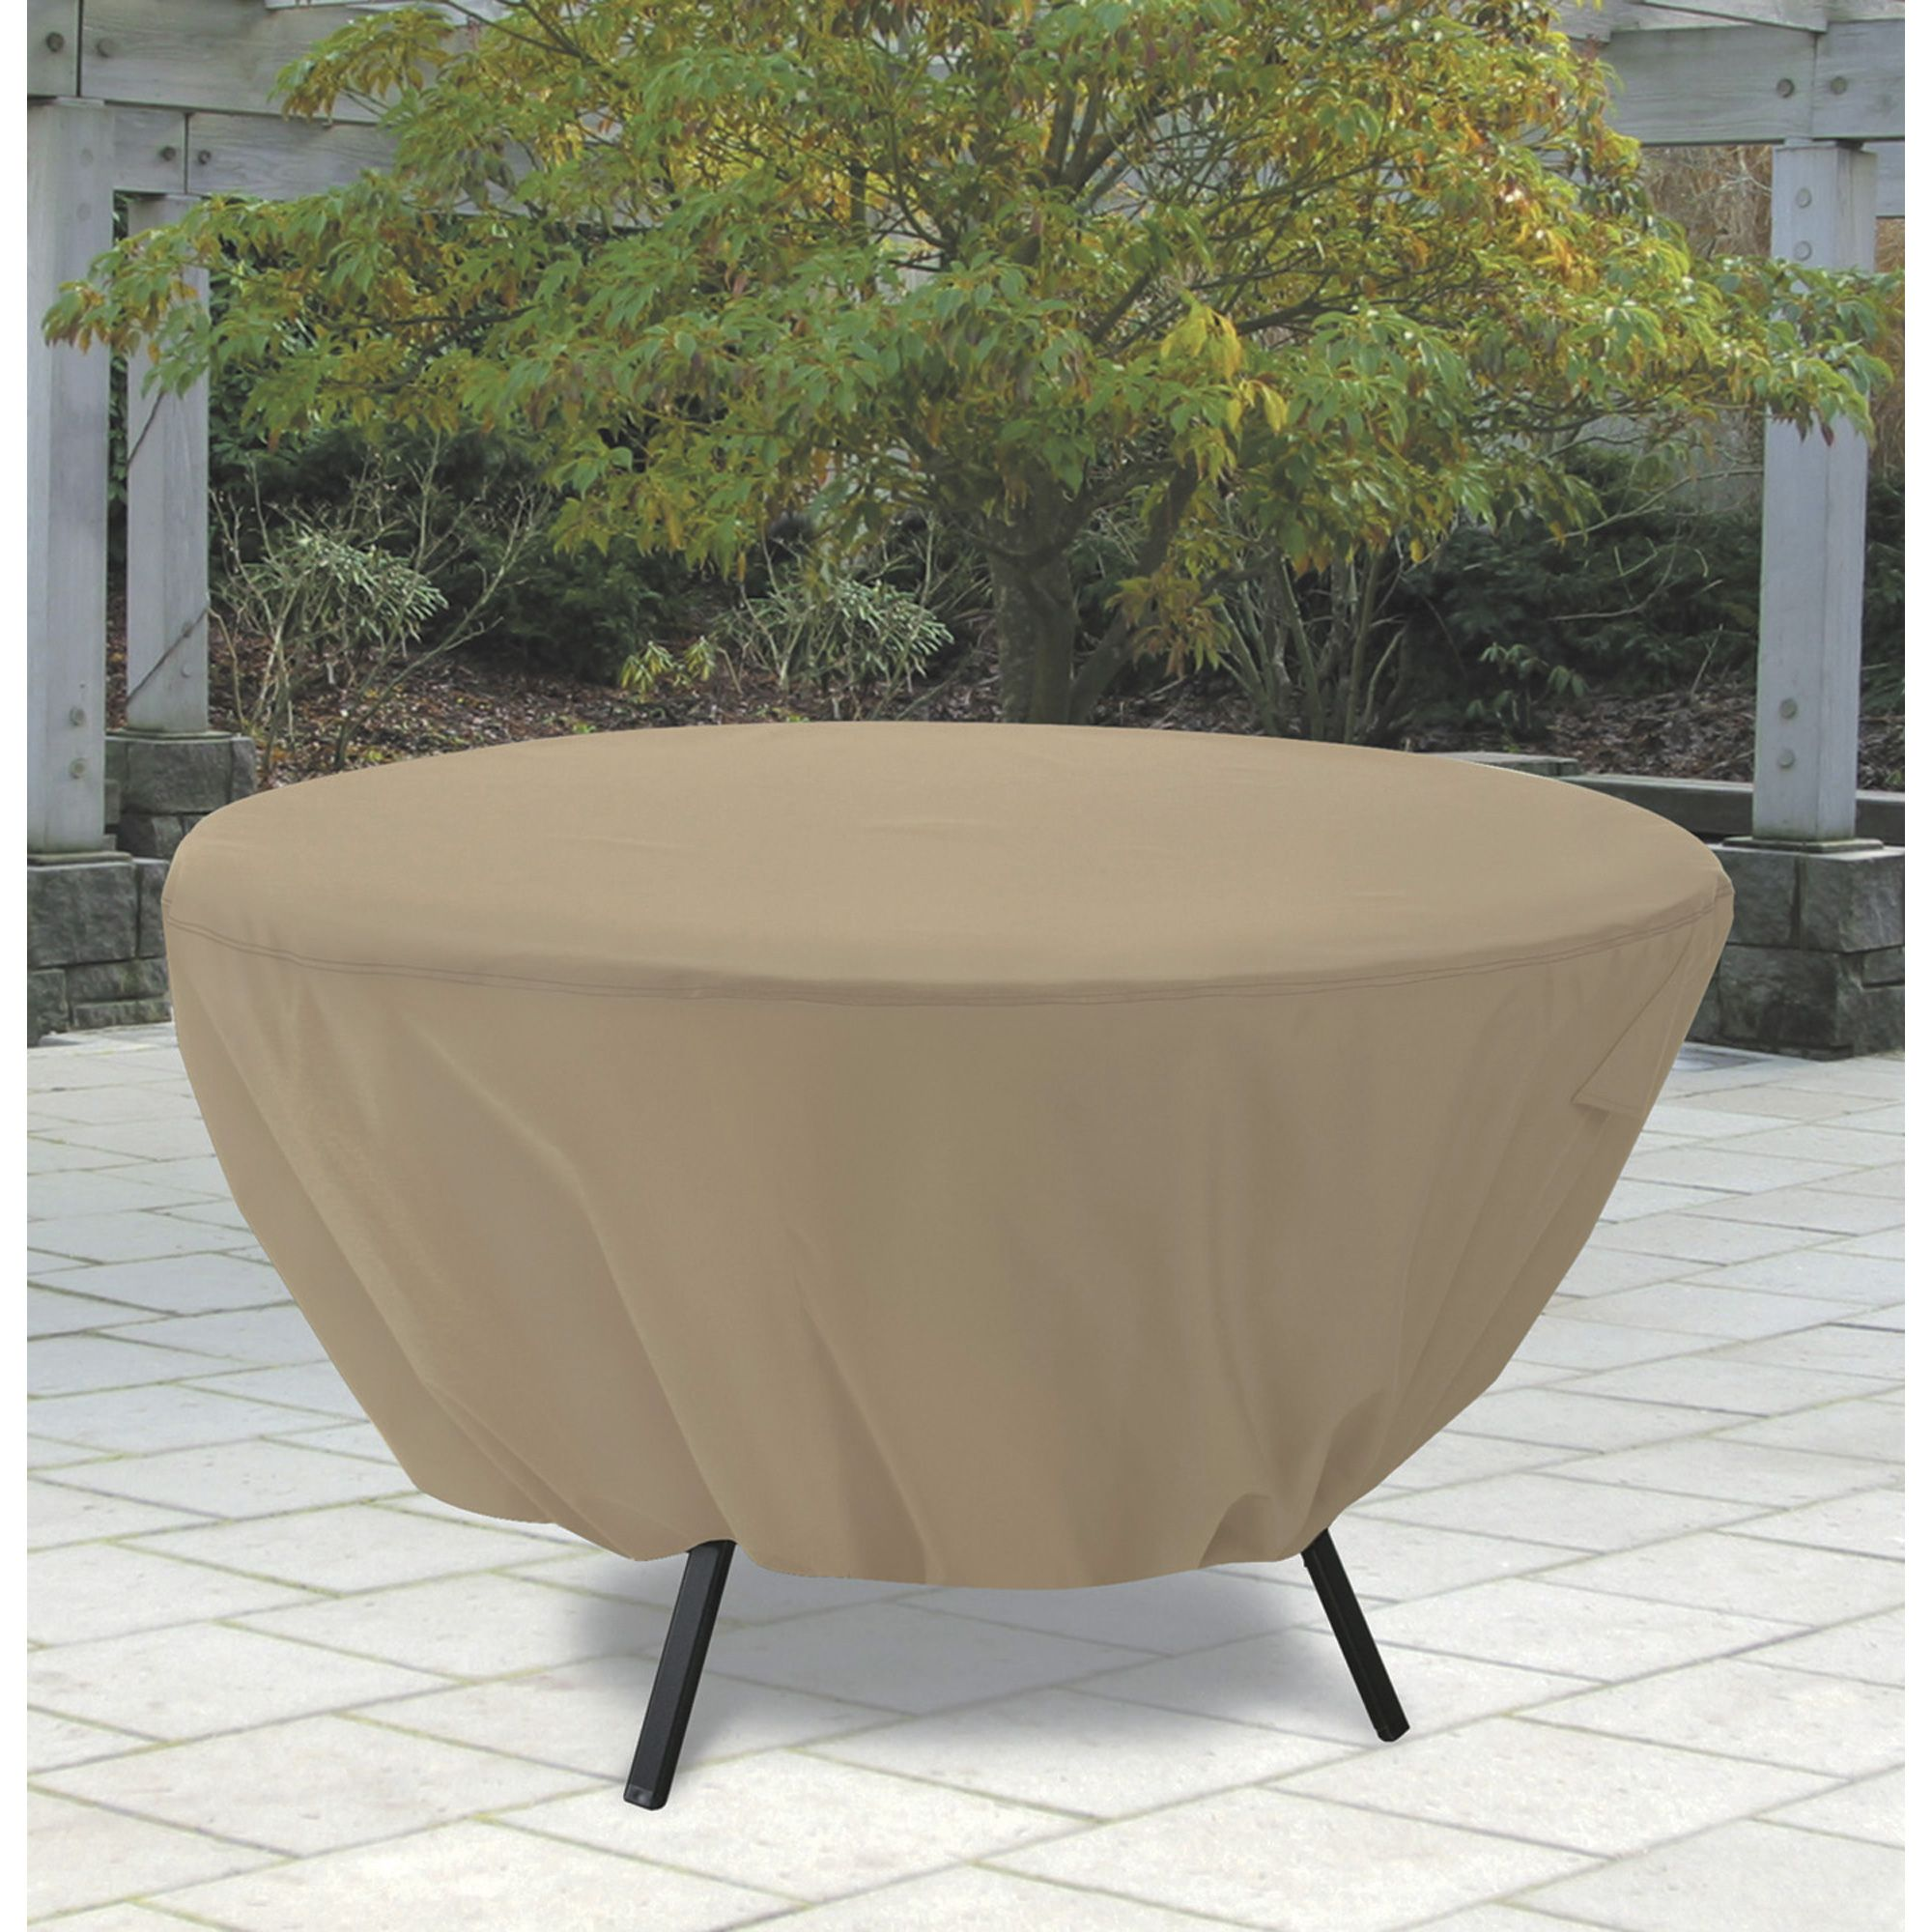 Classic Accessories Round Patio Table Cover Outdoor